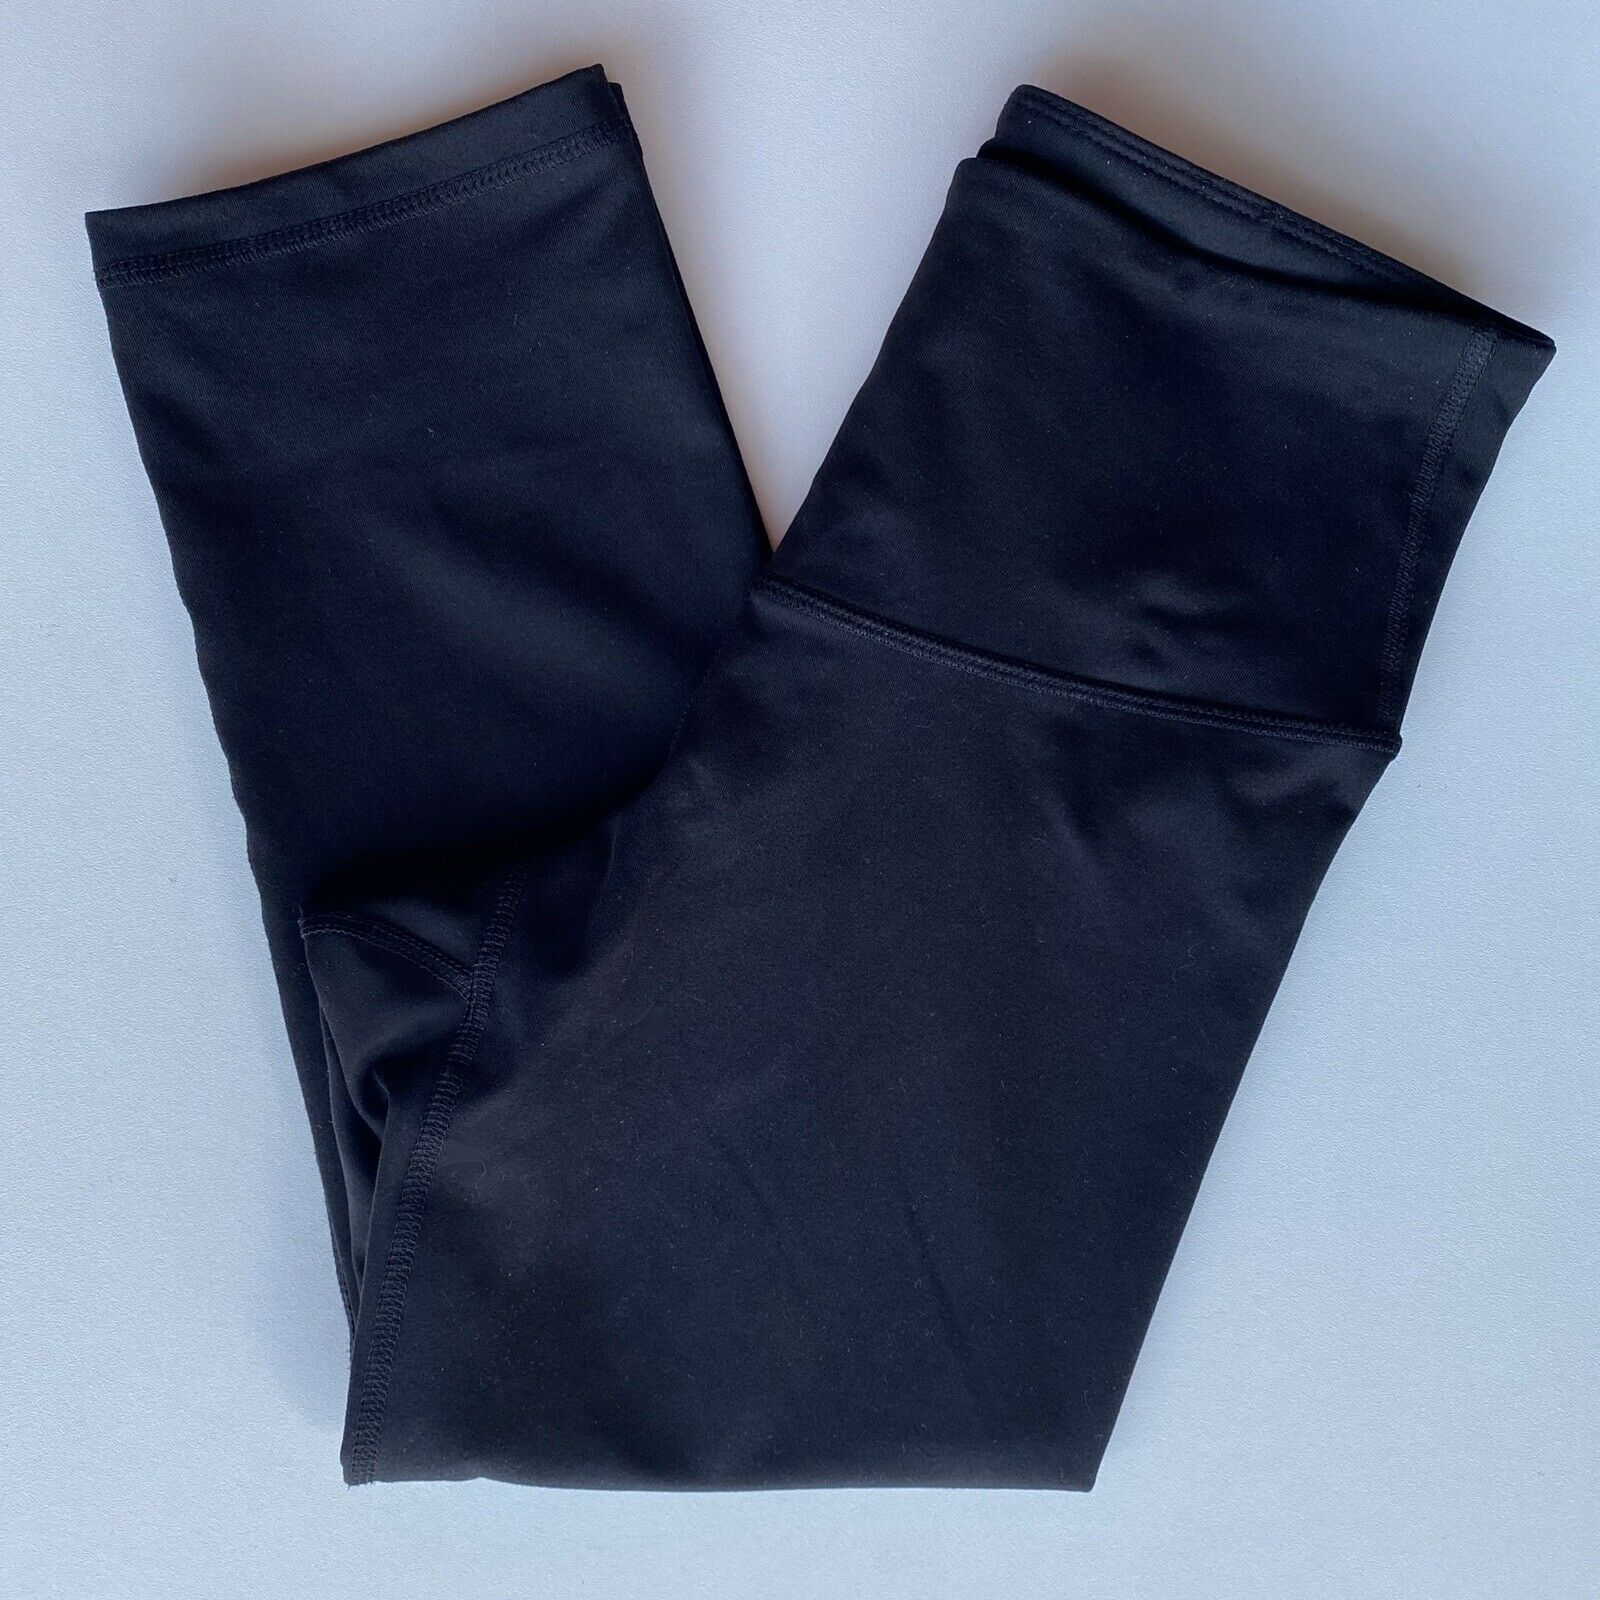 OLD NAVY Active Women's Compression High Rise Crop Leggings Black Small Workout